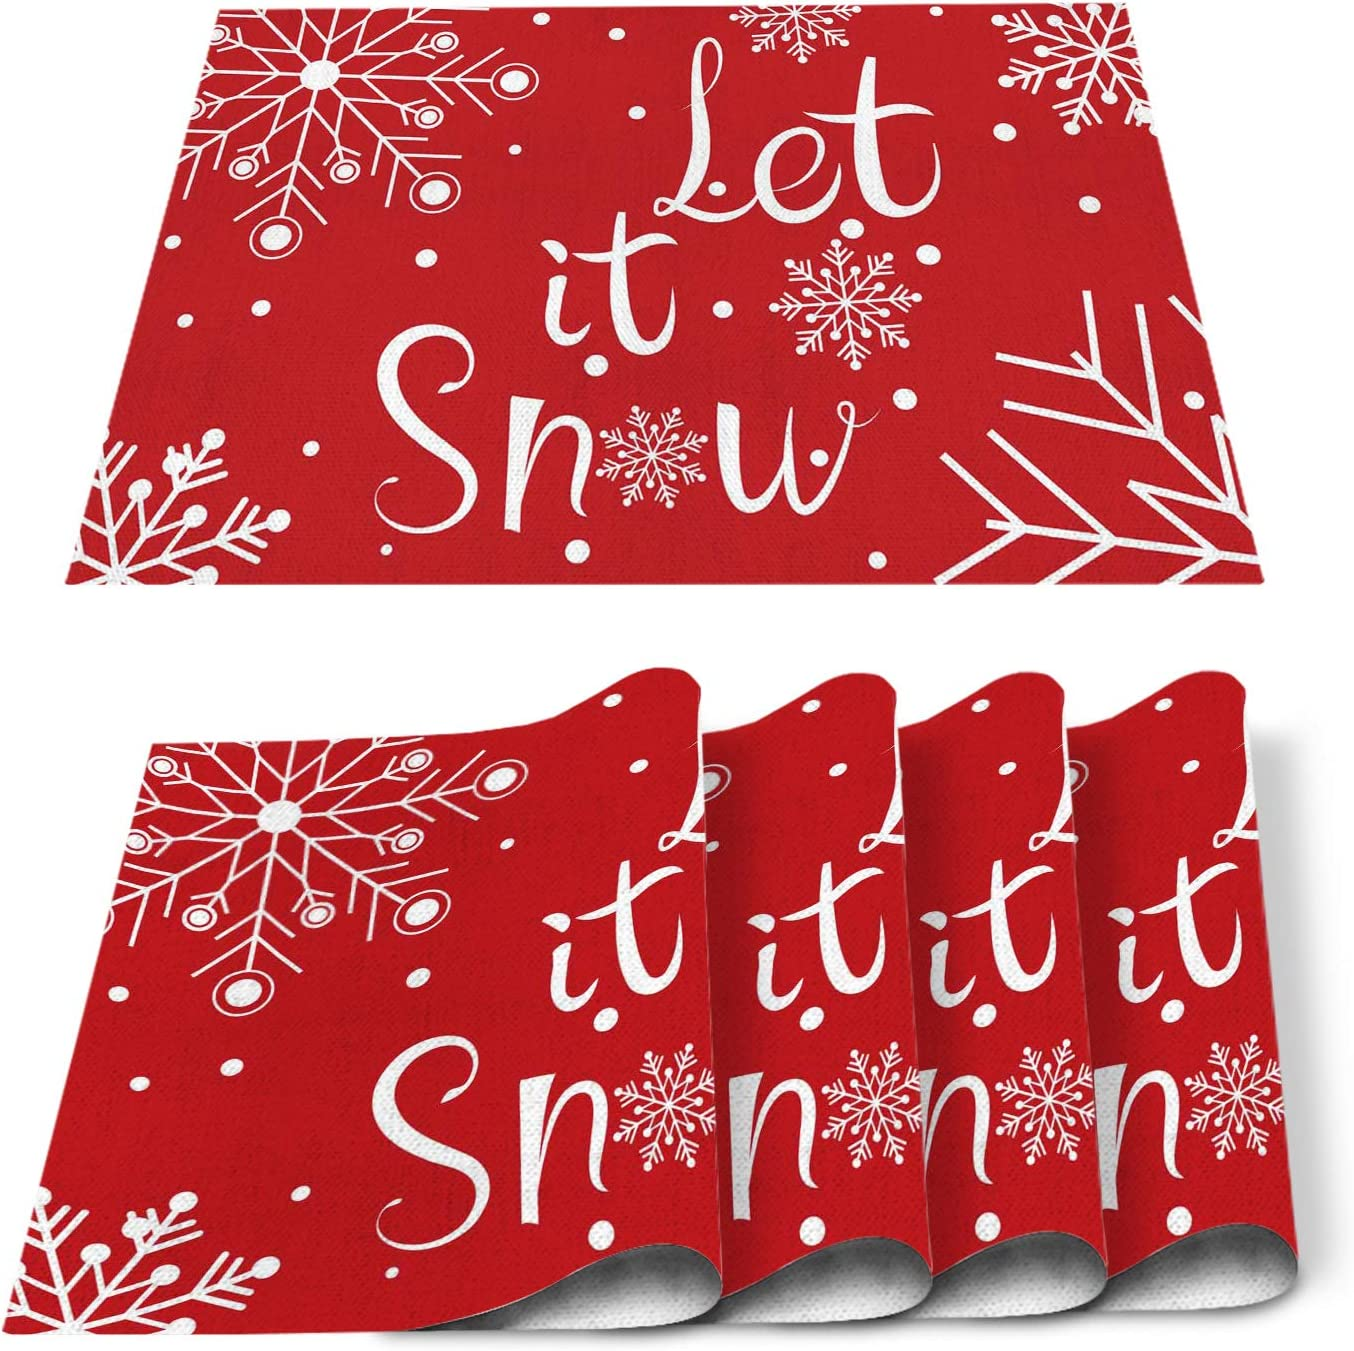 Christmas Placemat For Dinning Table Placemat Set Of 6-Cotton Linen Waterproof Cloth Table Mat-Red Let It Snow Xmas Place Mat,Machine Washable Easy Clean Fabric,Rustic Farmhouse Holiday Dinner Decor